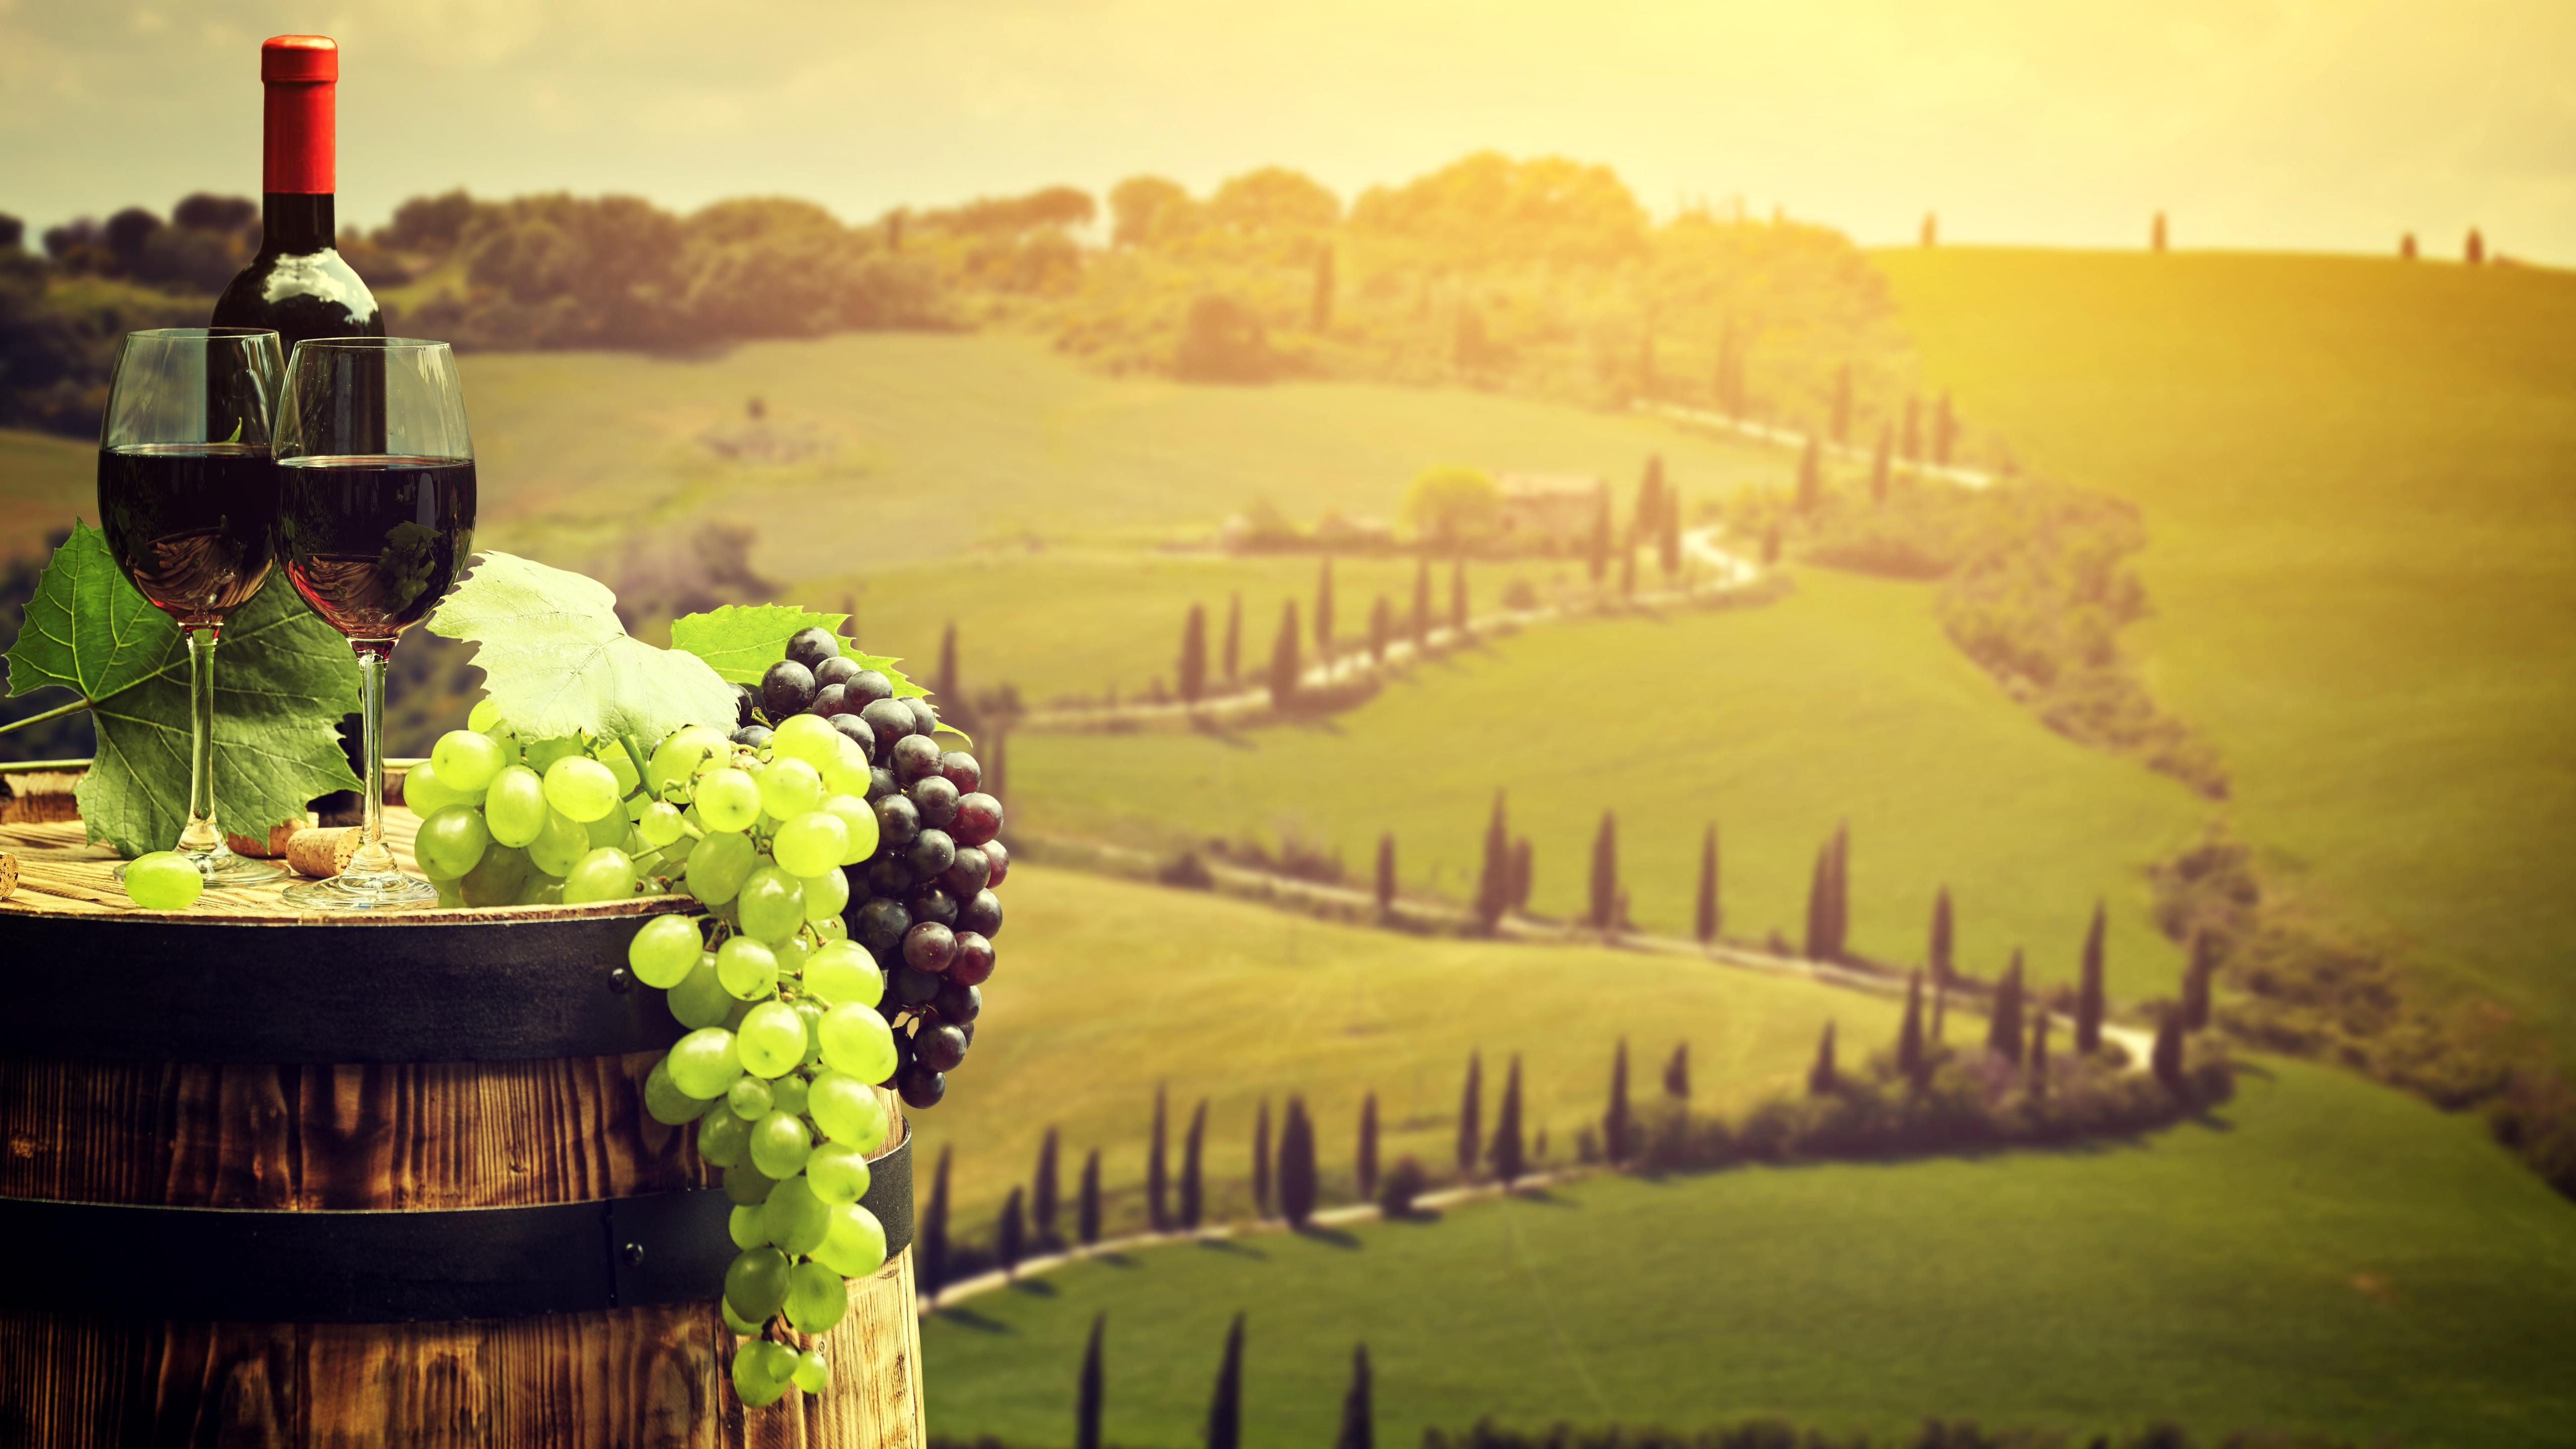 Grapes and wine wallpaper